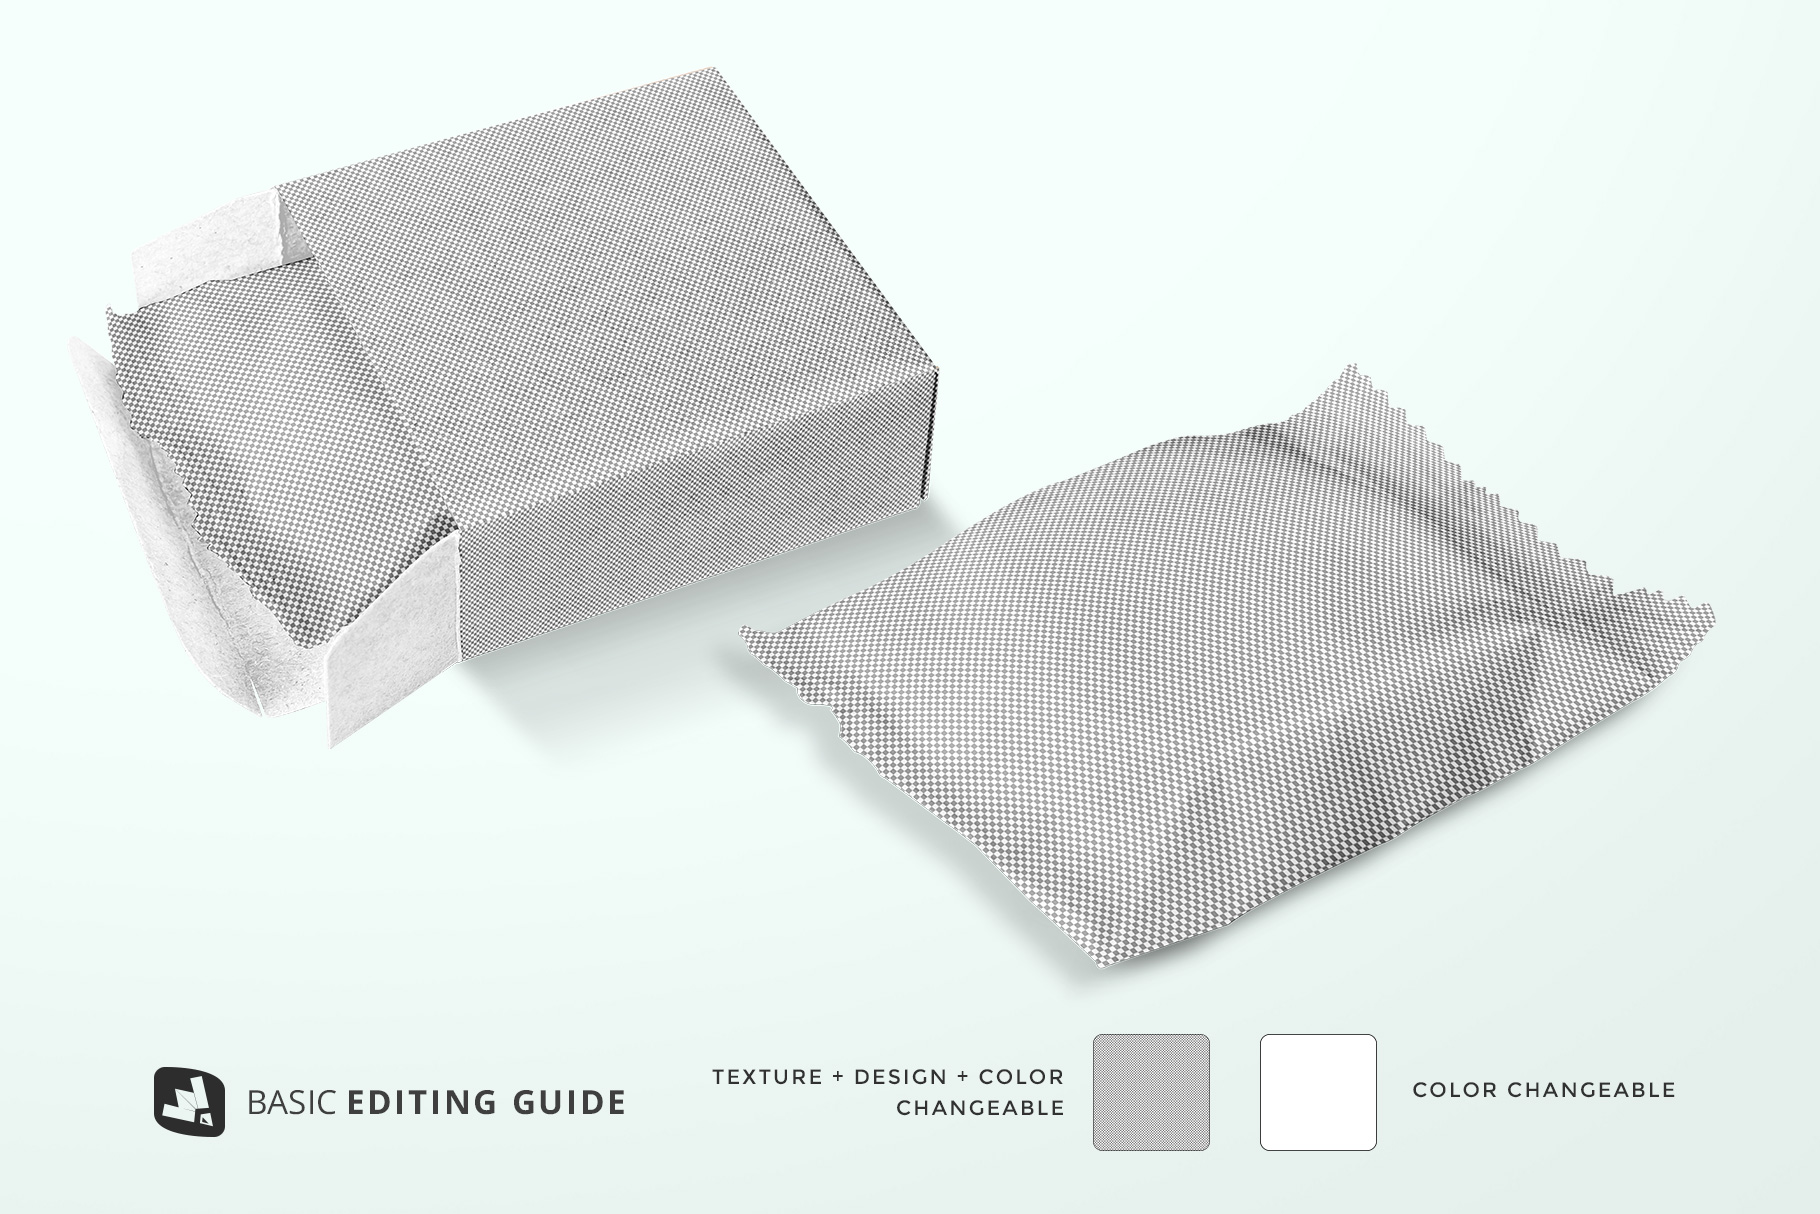 editability of the hand made soap bar packaging mockup